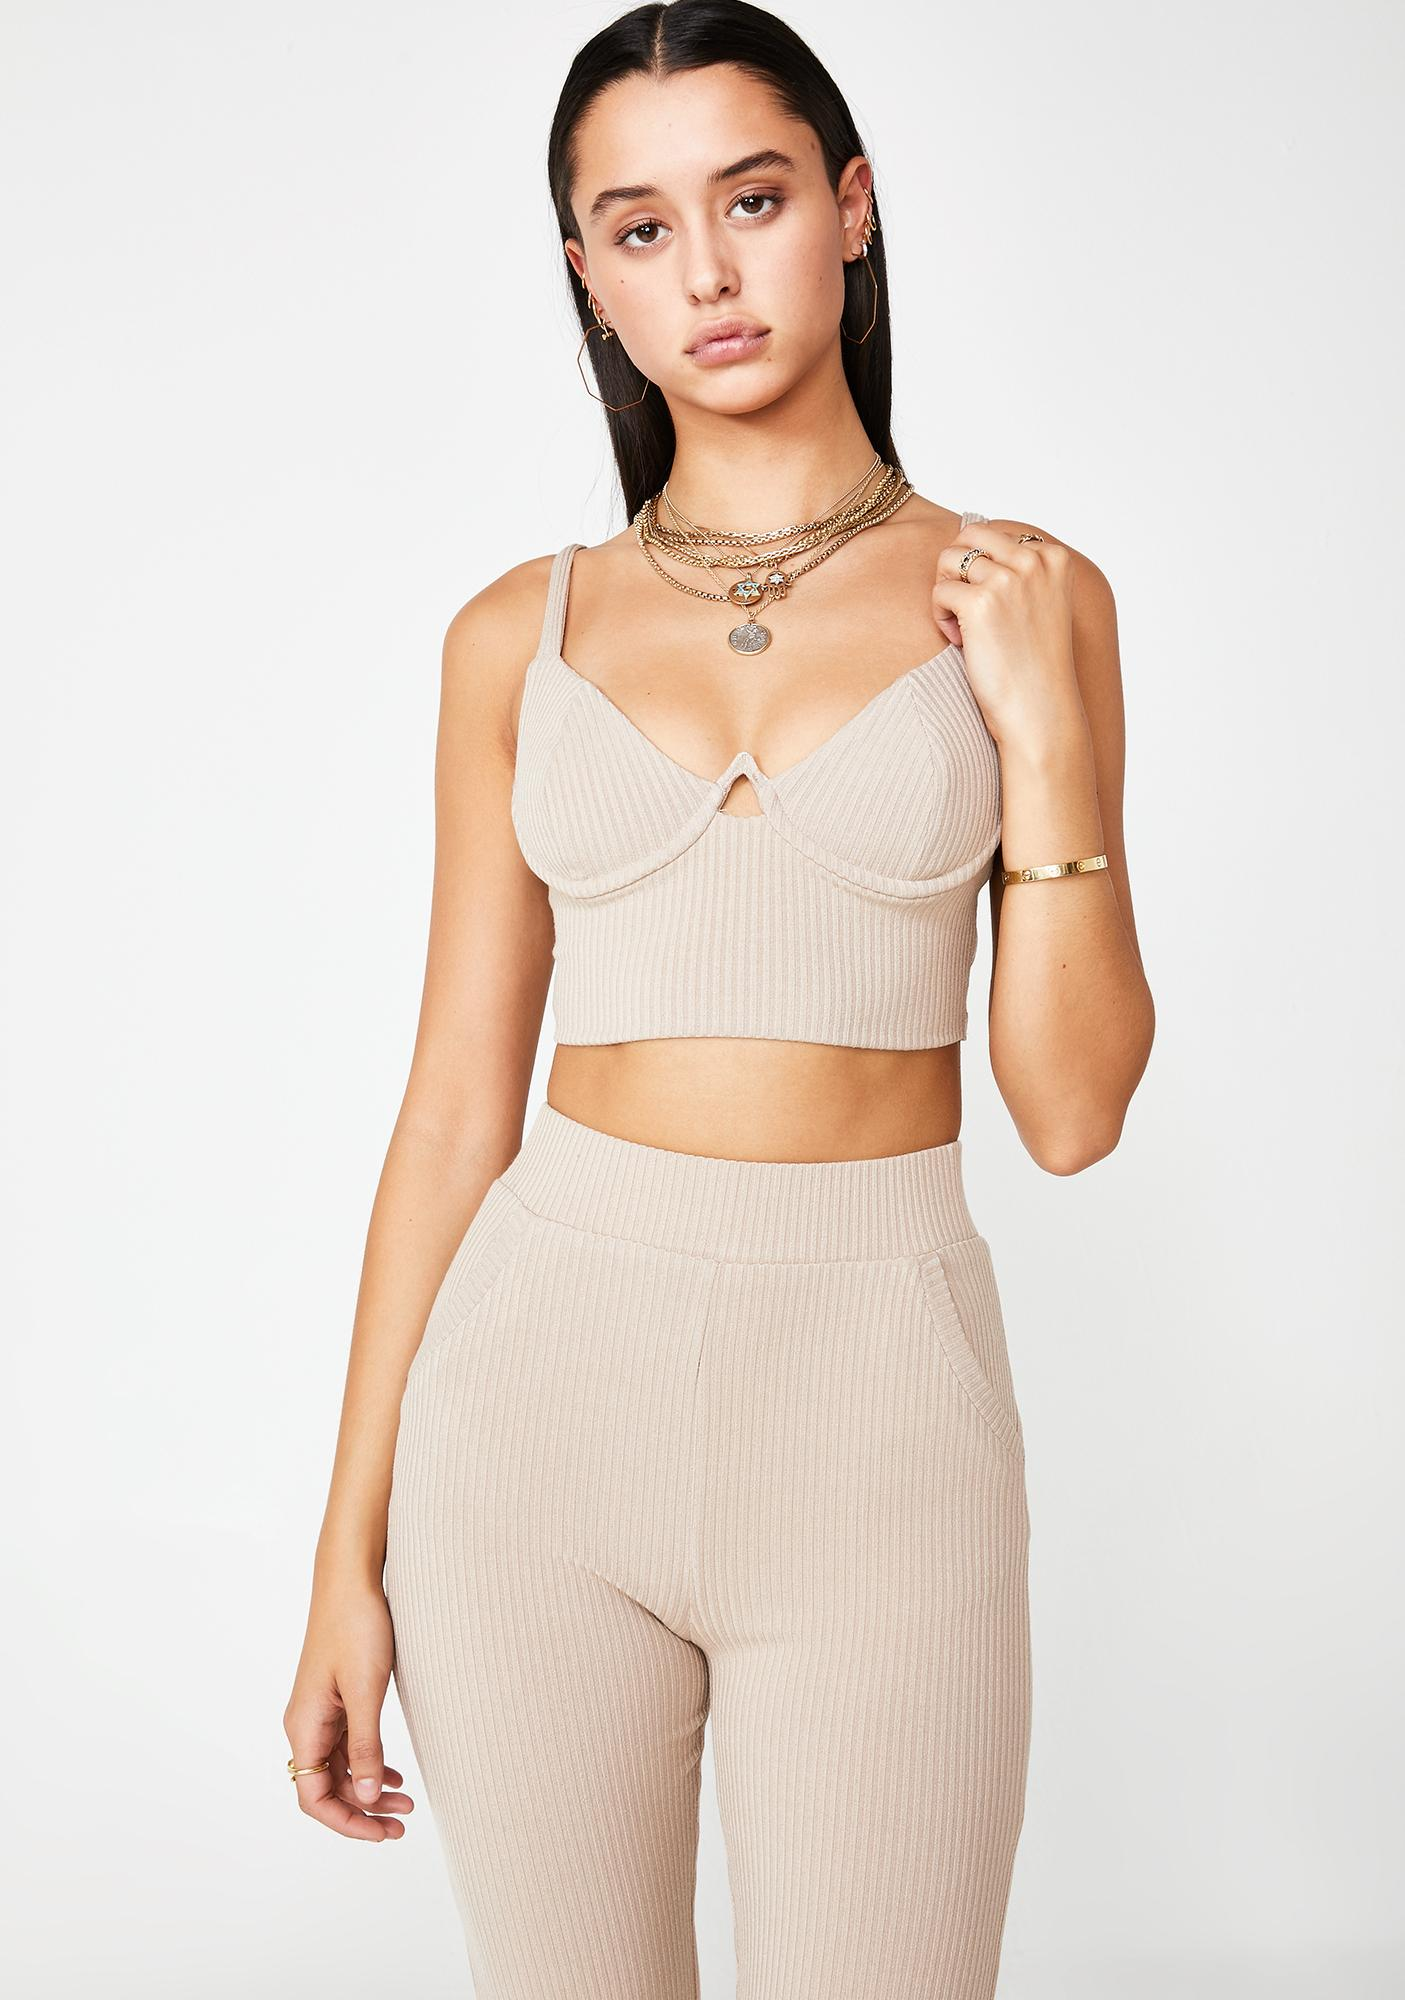 Flossin' All Day Ribbed Set